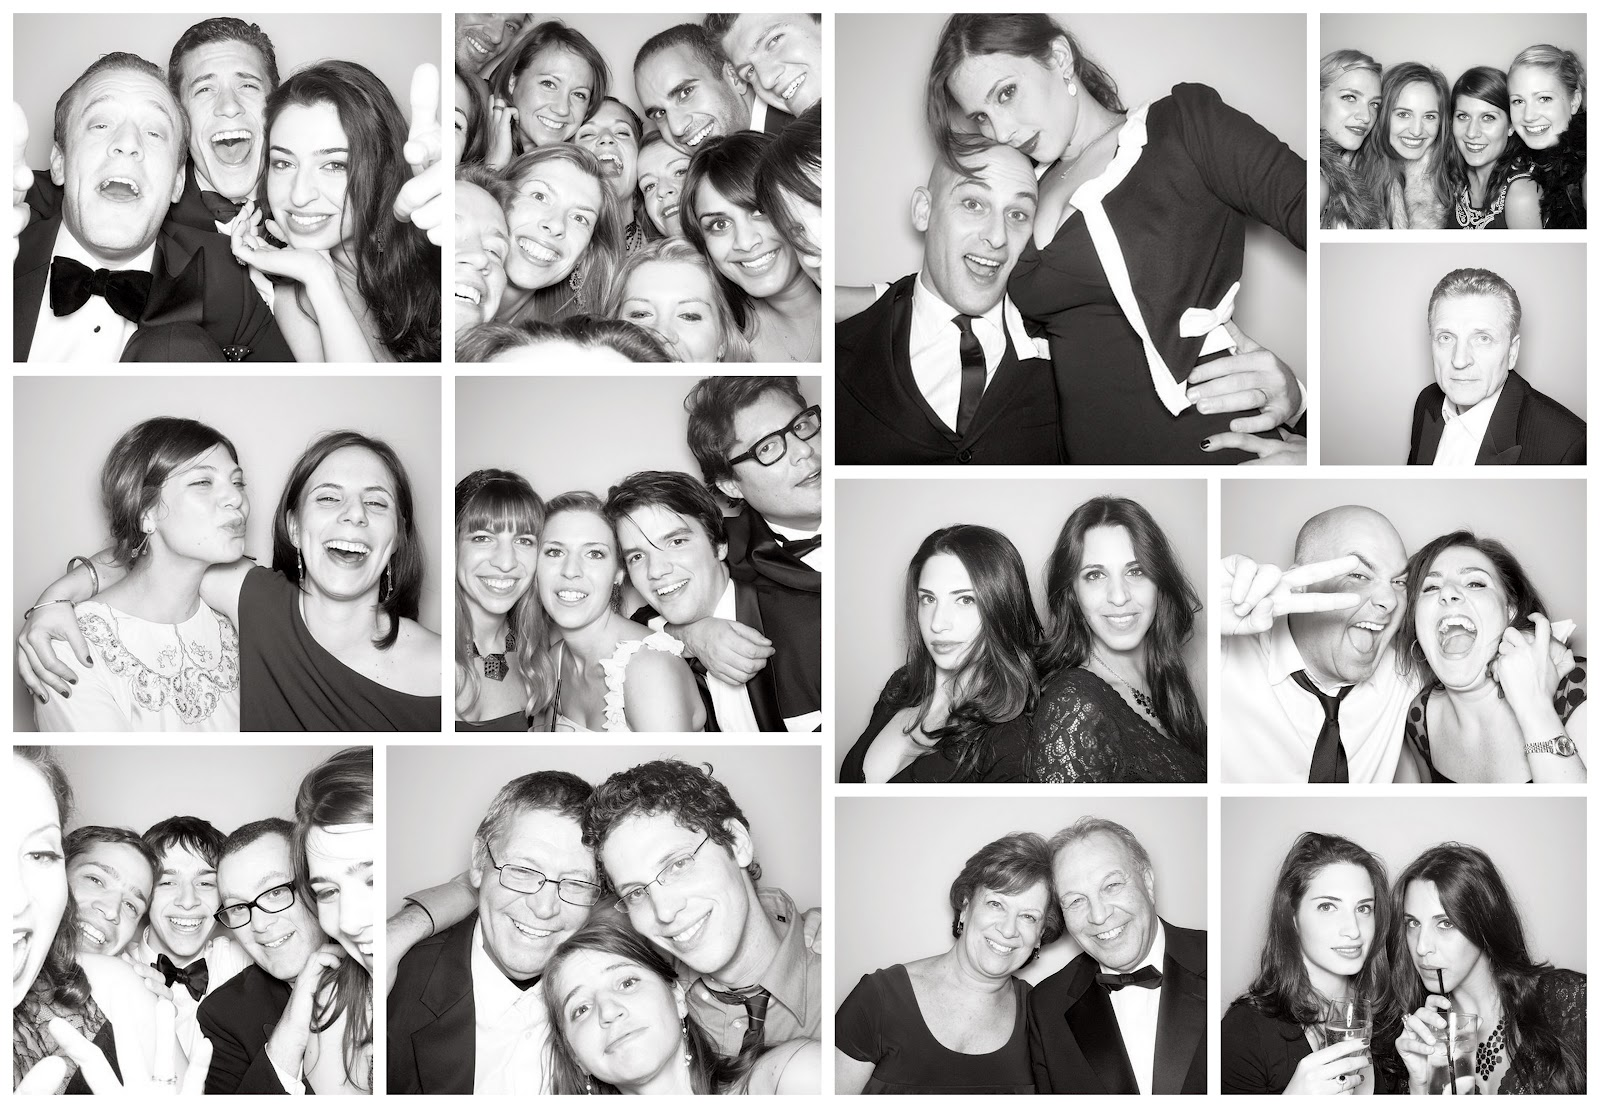 Wedding Photo Booth Ideas 89 Awesome Want more fun wedding